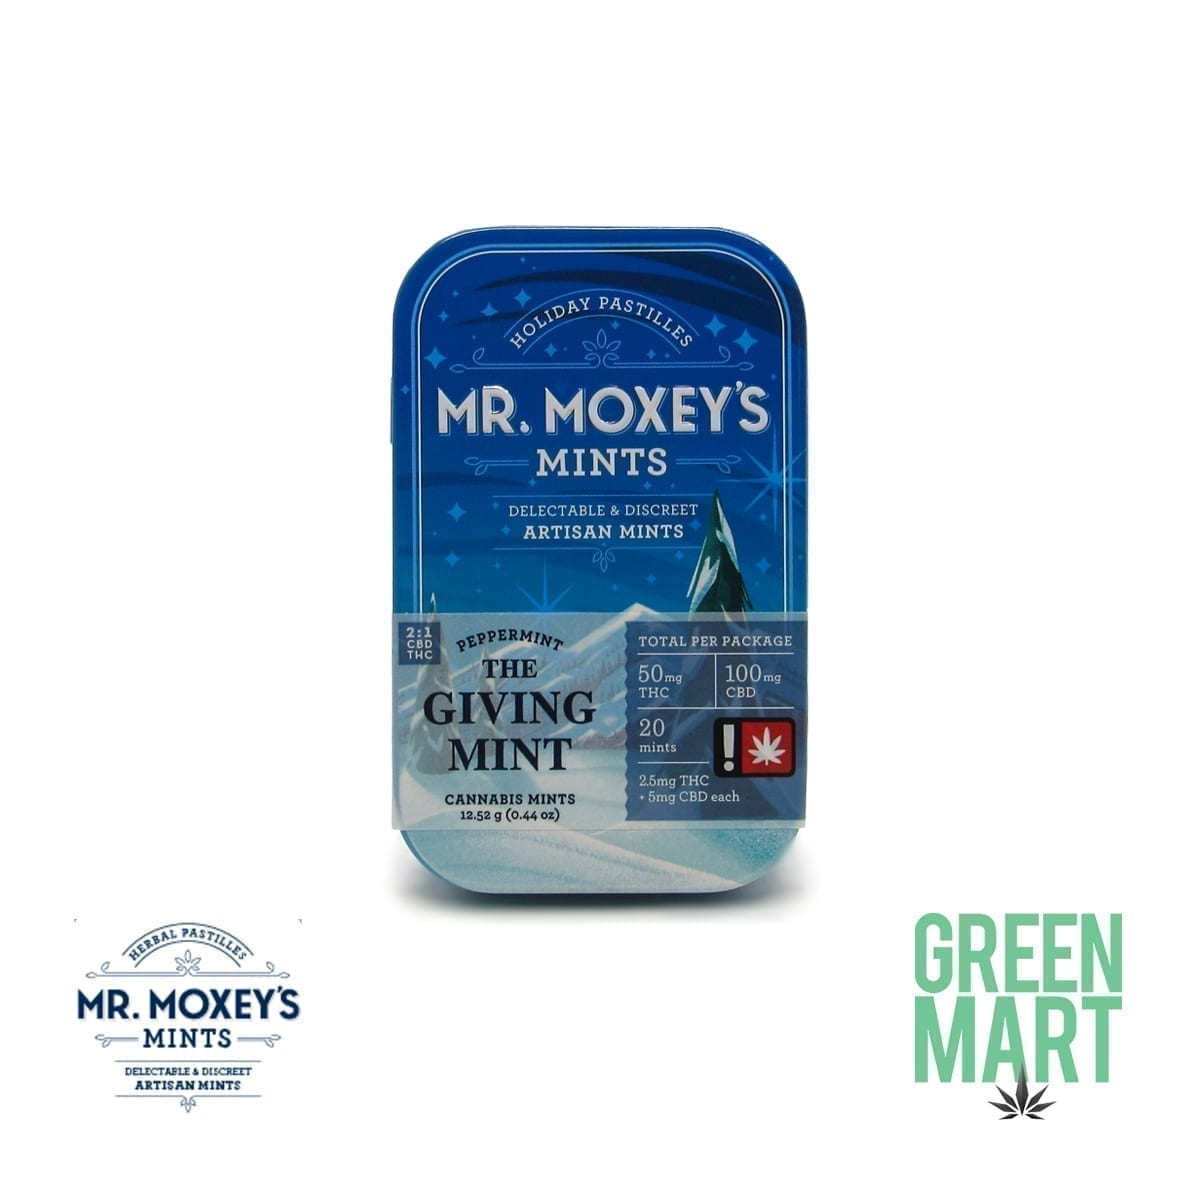 Mr. Moxey's Mints - The Giving Mint 2:1 THC/CBD